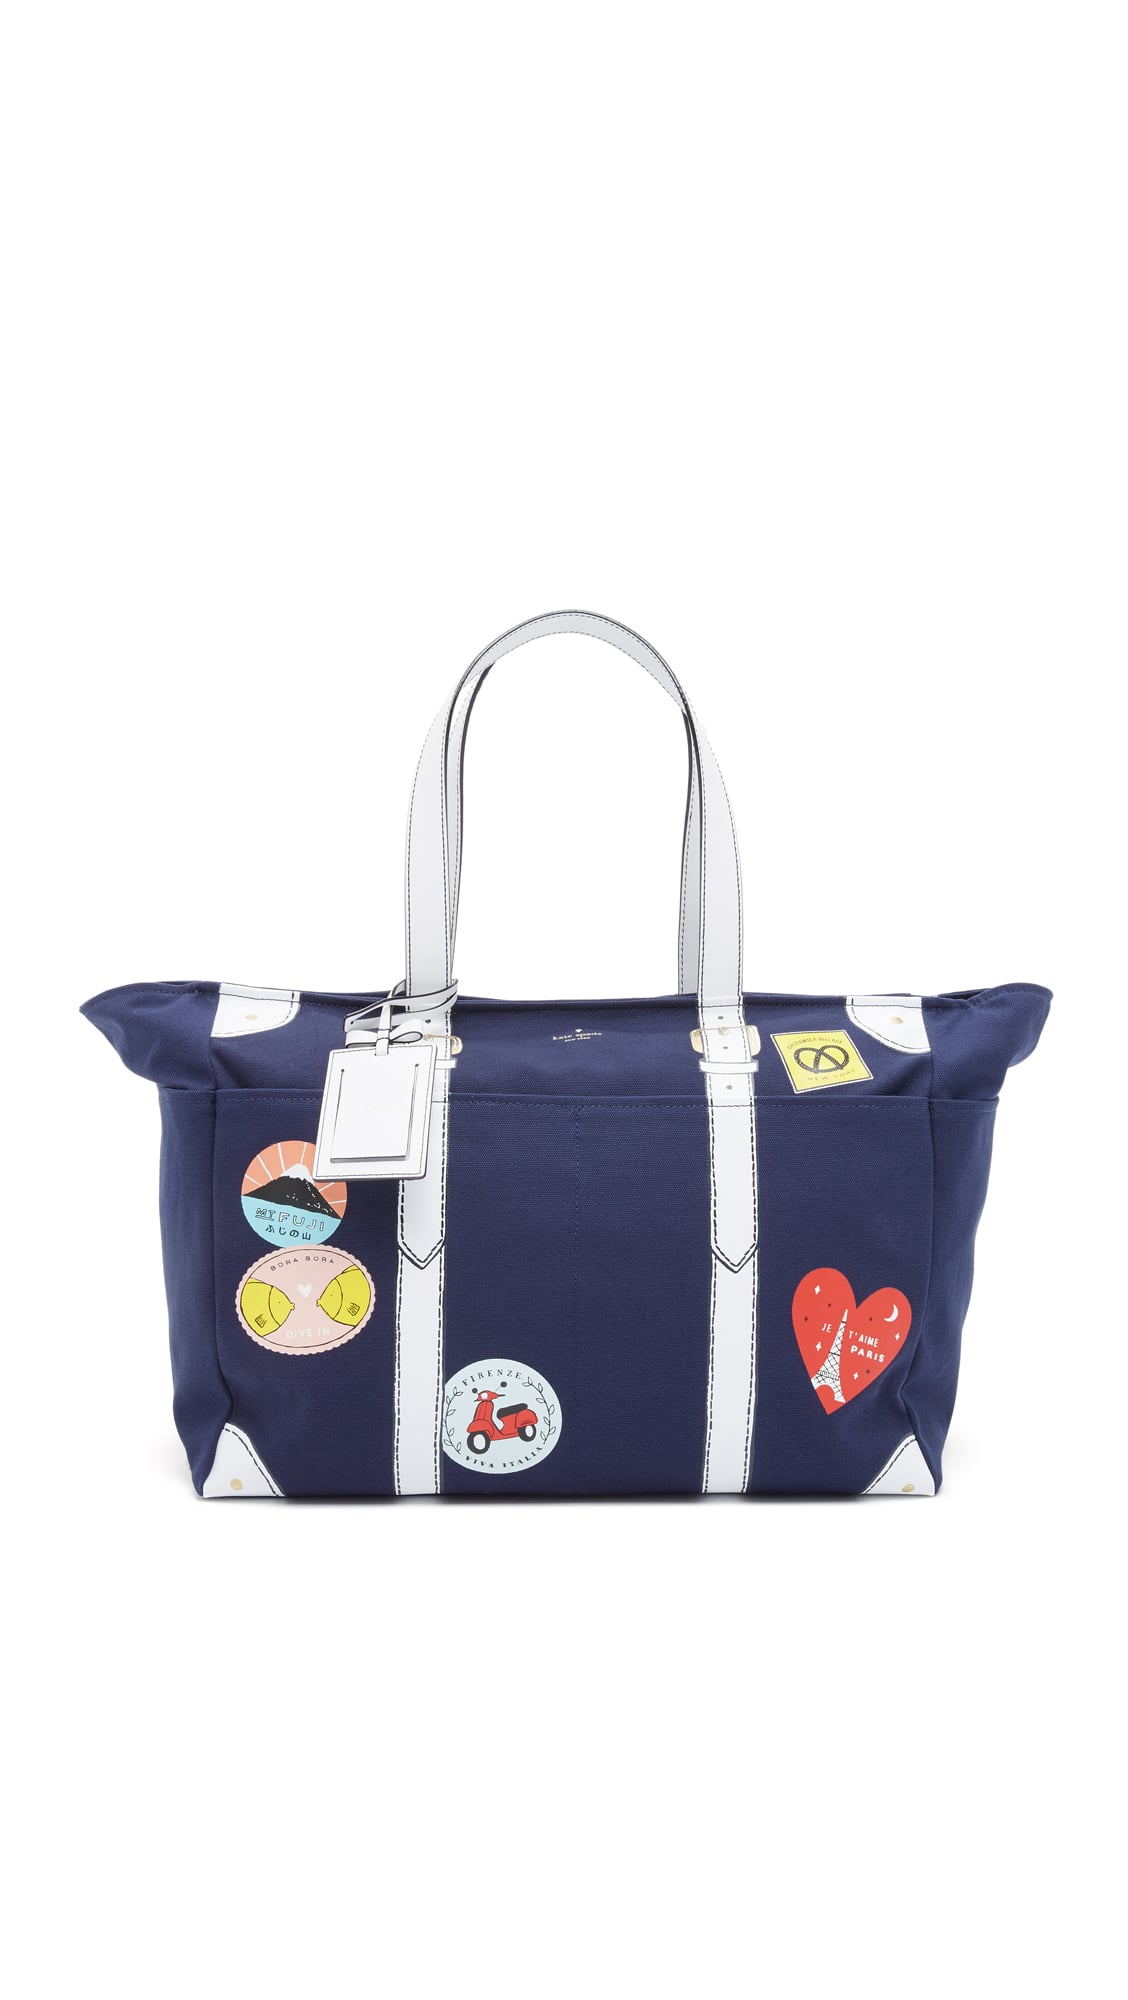 Kate Spade New York Holiday Weekender Bag ($348)